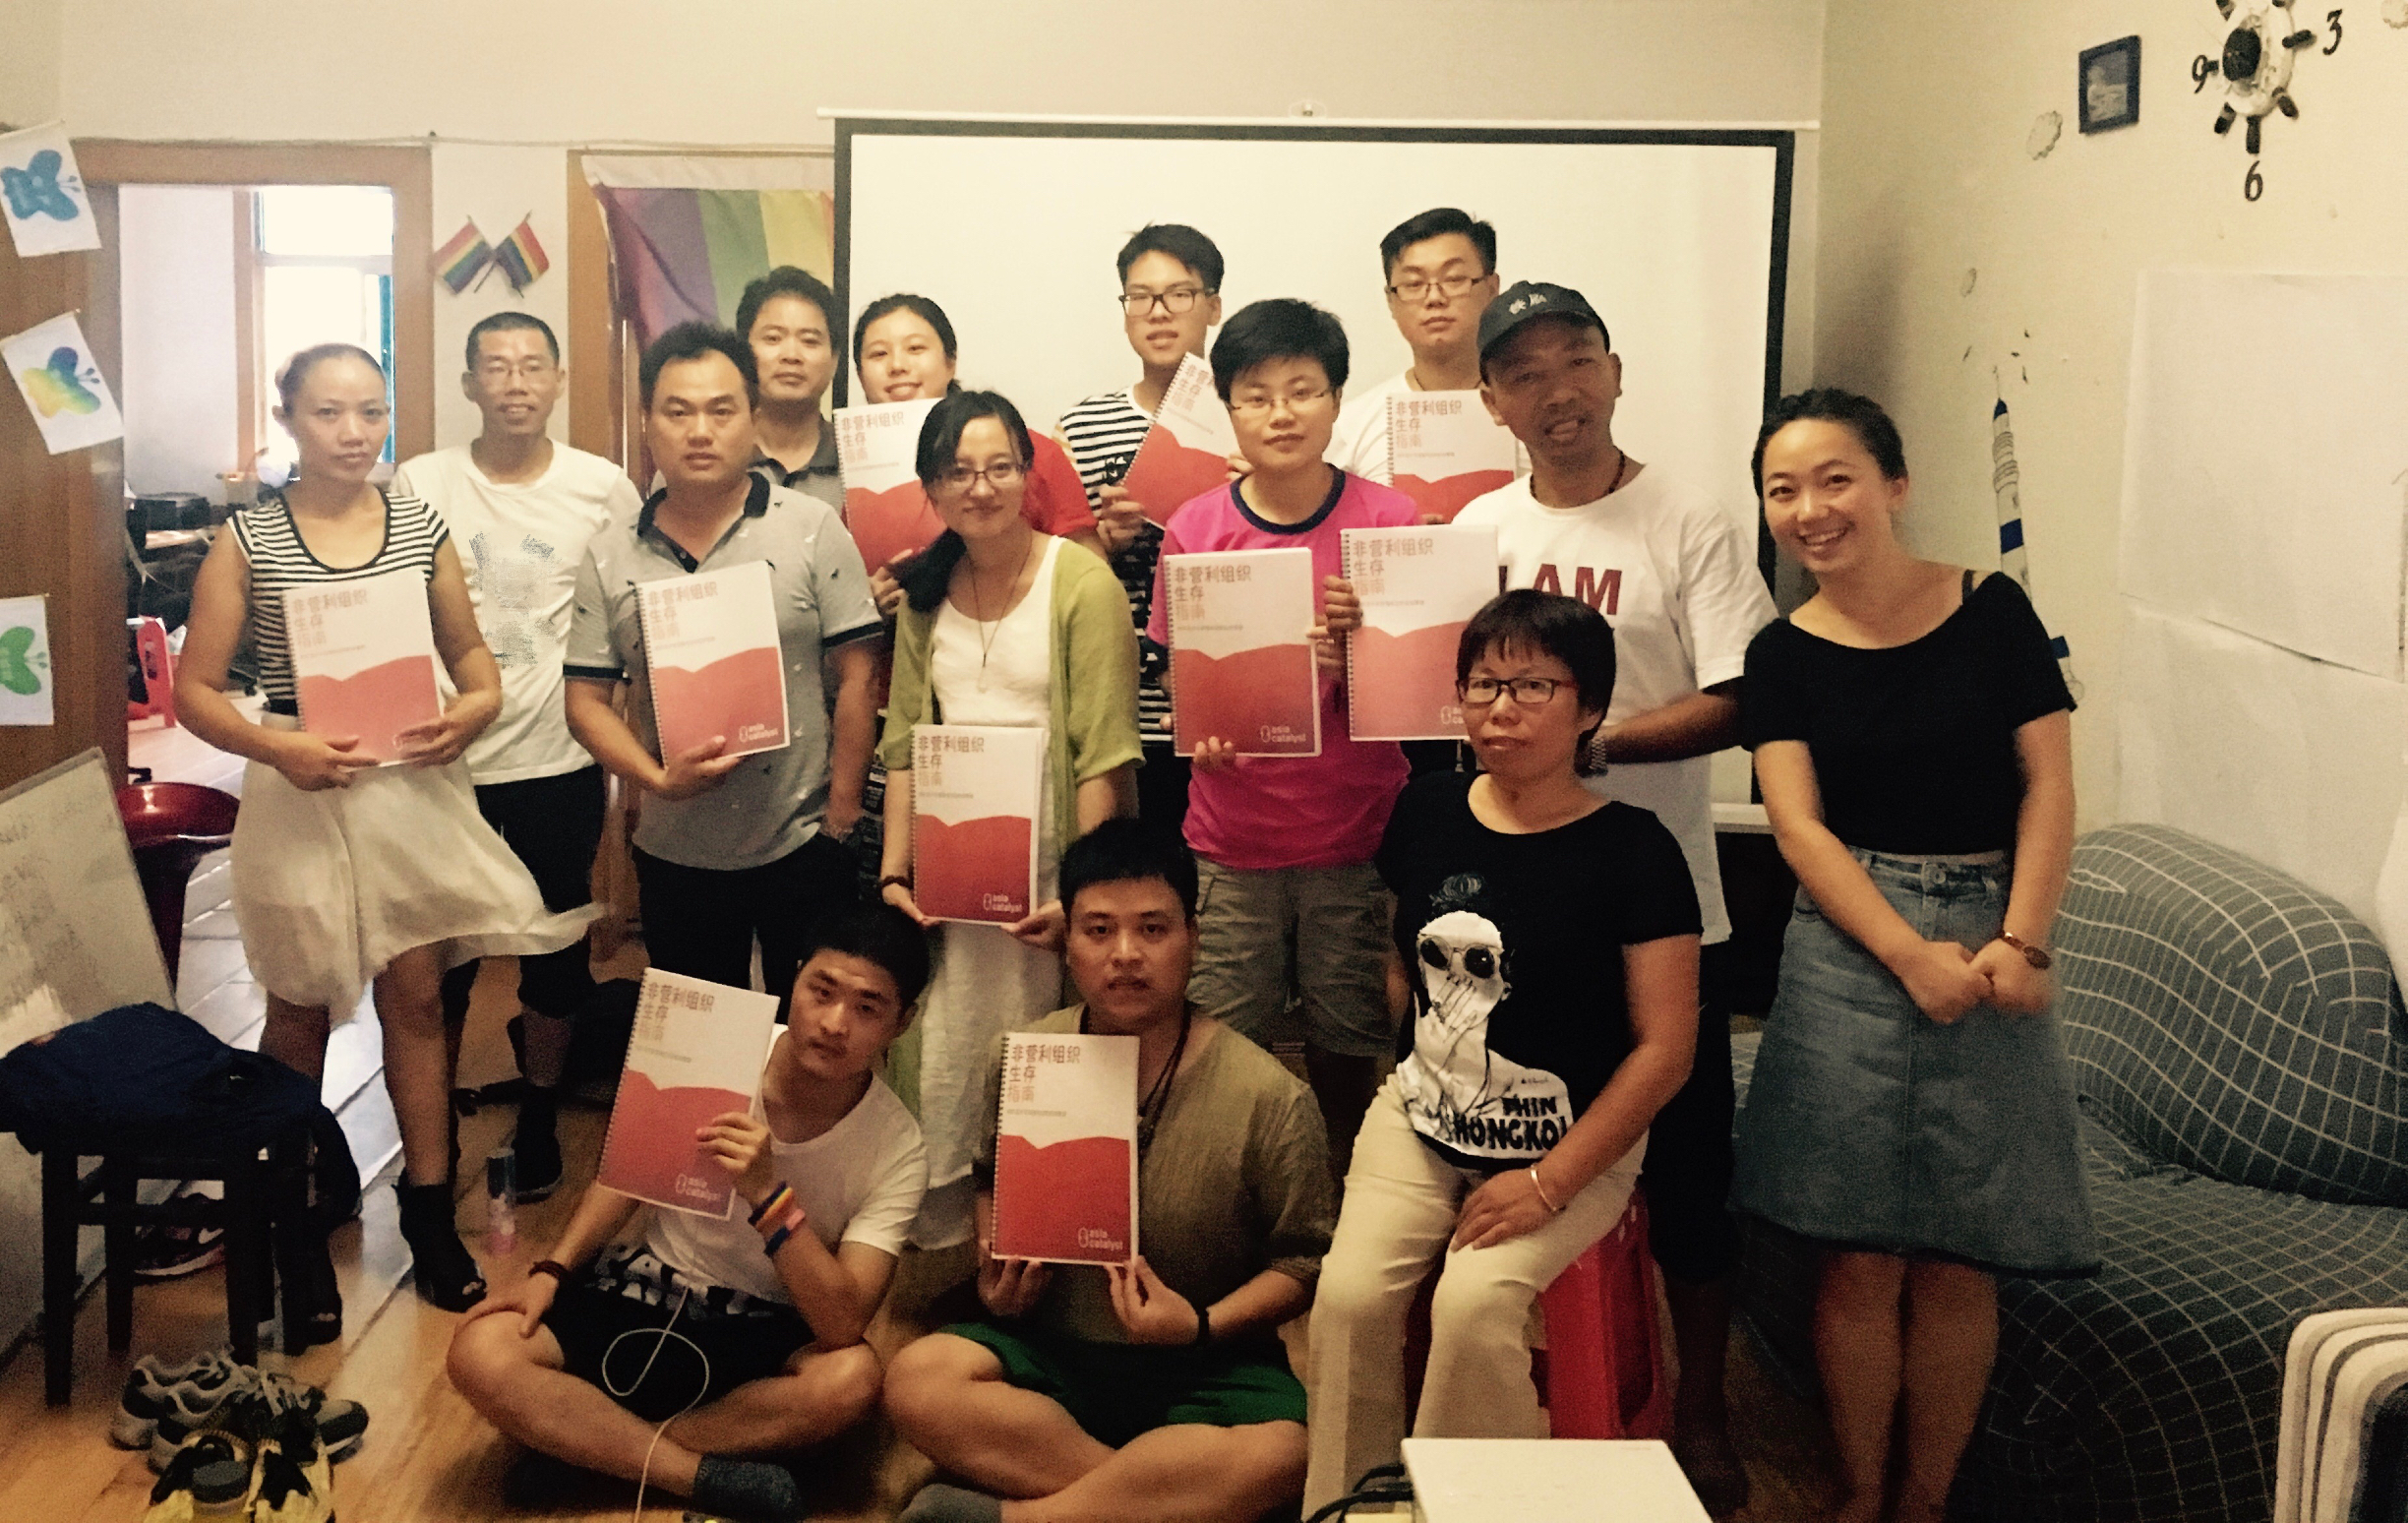 Rolling out the new edition of the Nonprofit Survival Guide in China